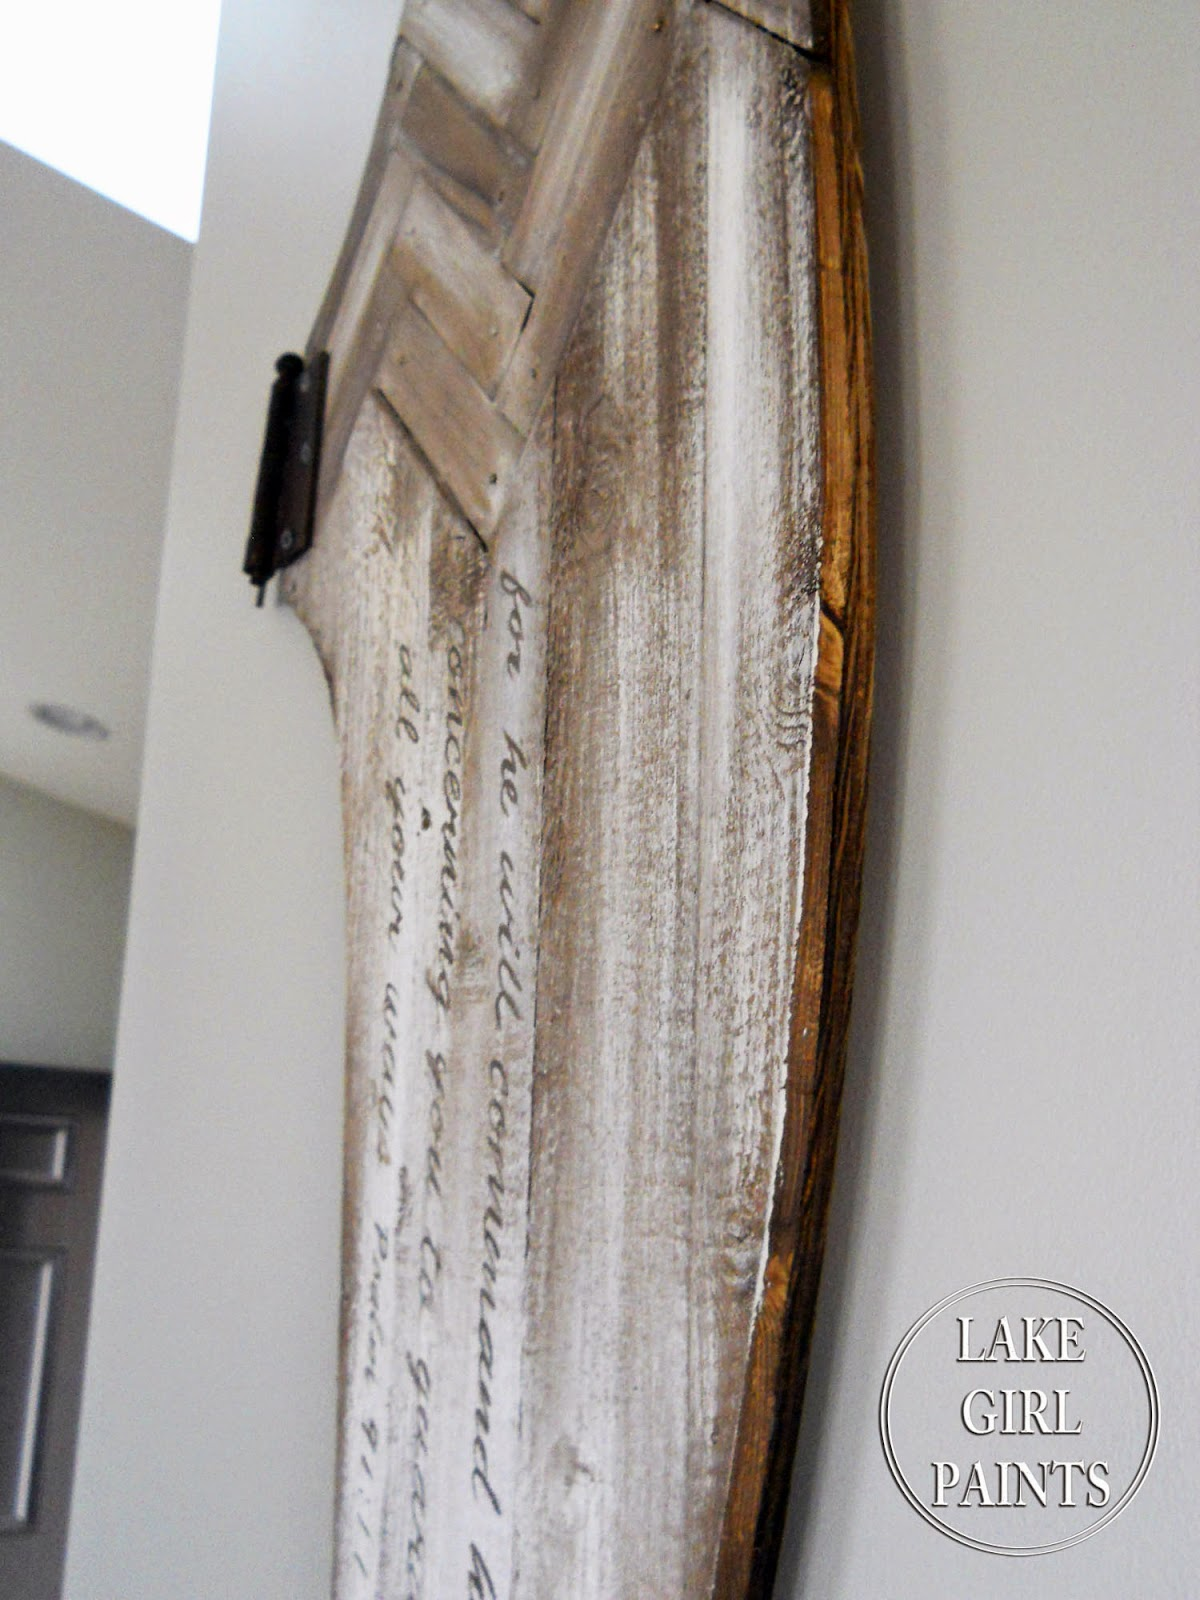 Lake Girl Paints Rustic Wooden Angel Wing